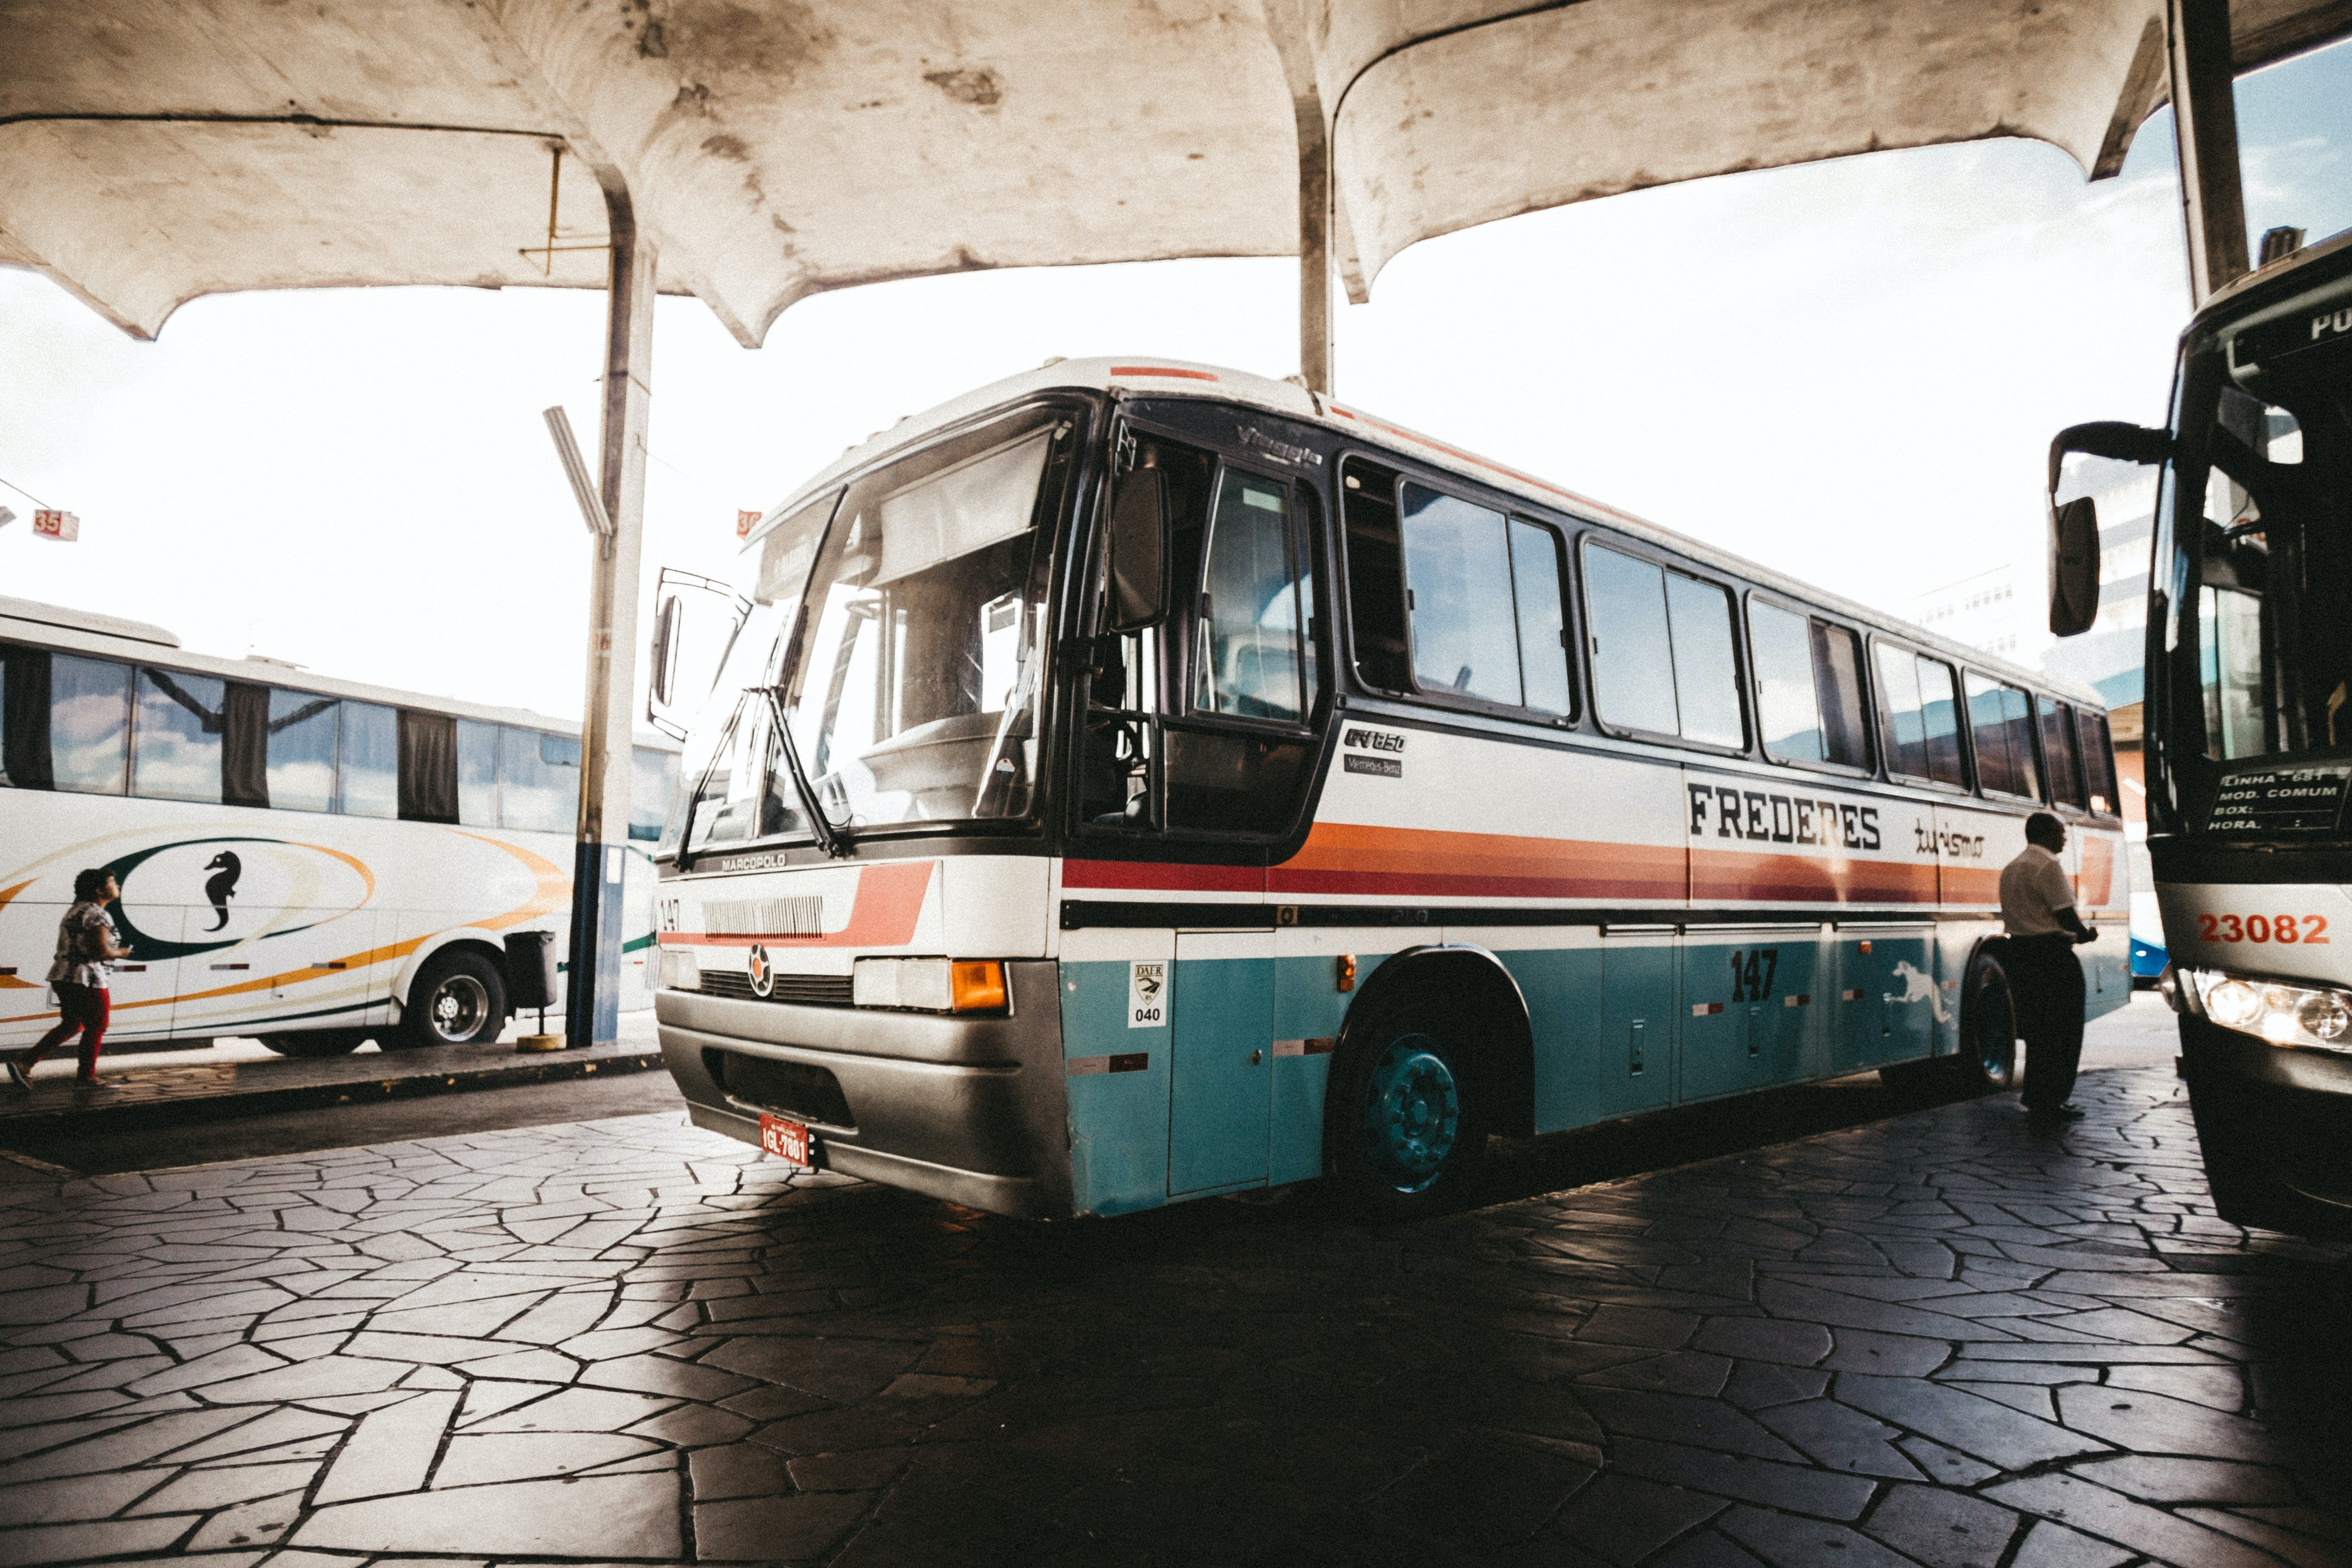 A bus standing at a station. | Source: Pexels/ Jonathan Borba